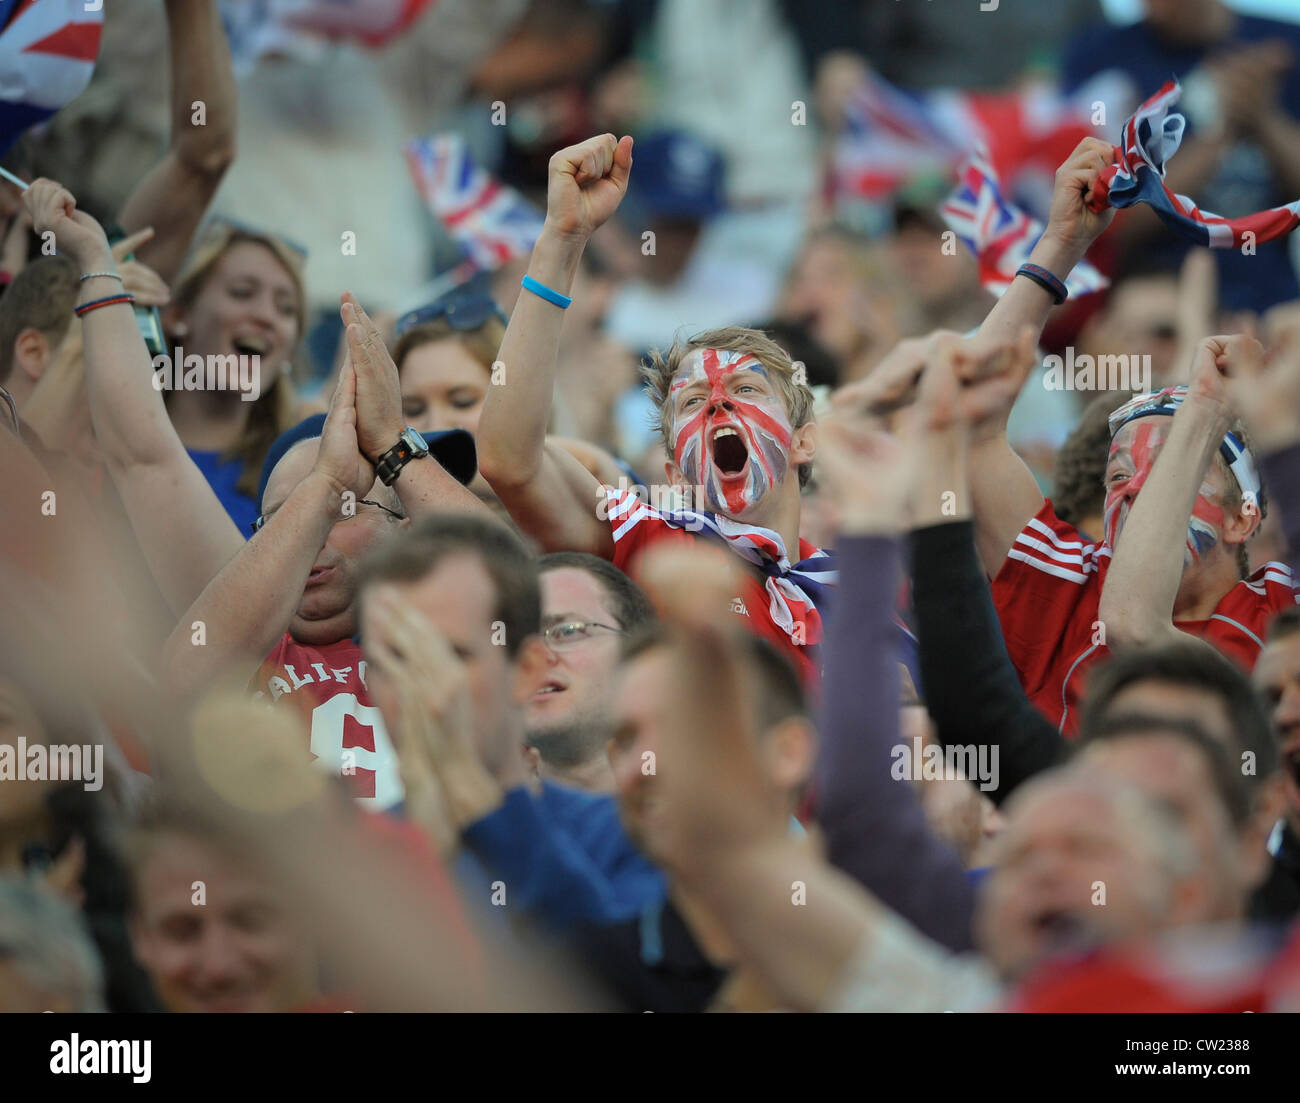 GBR's fans celebrate the 2nd goal during their pool game against Australia in the London 2012 Olympic hockey - Stock Image